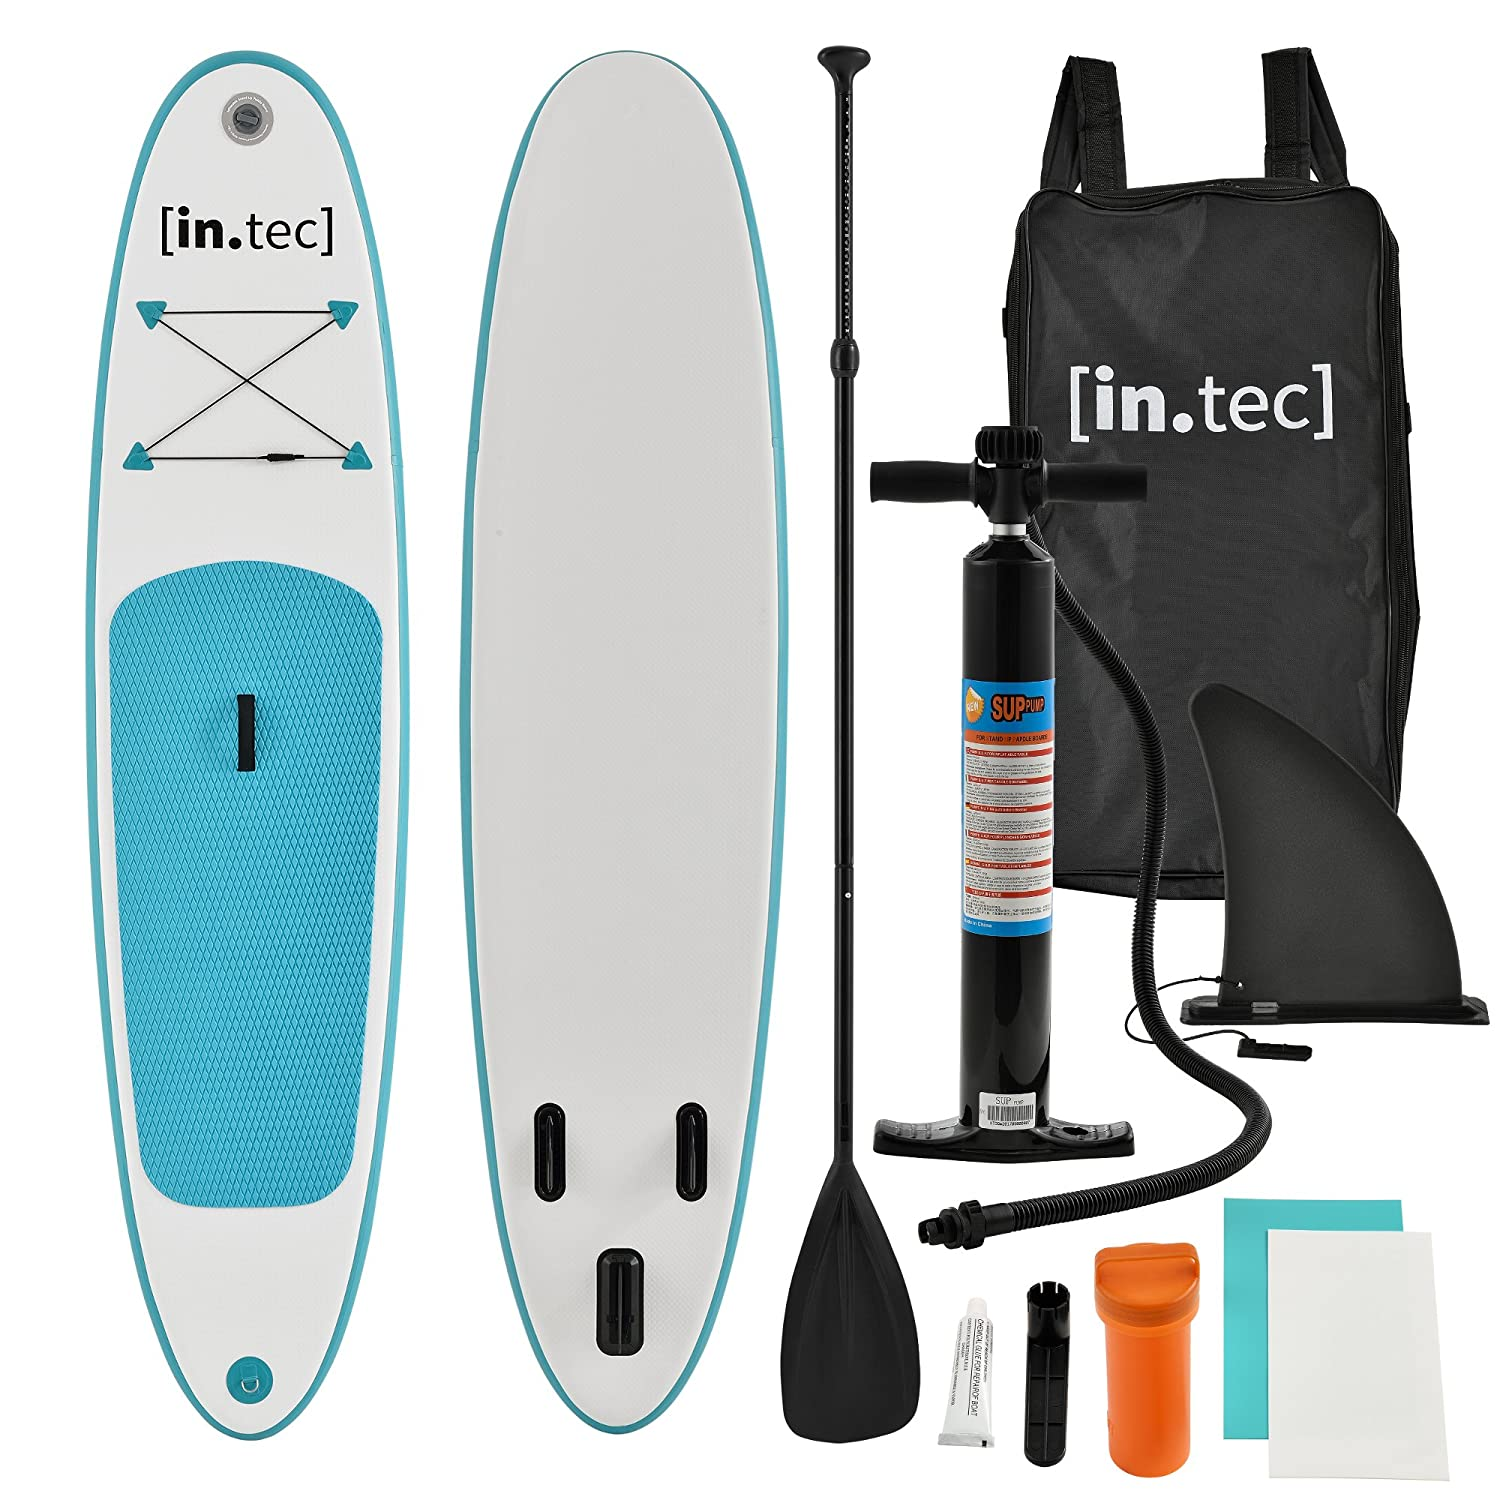 Tec] Tabla de Surf Hinchable remar de pie Paddle Board 305 x 71 x 10cm Tabla de Sup de Aluminio con Remo y Bomba - Turquesa: Amazon.es: Deportes y aire ...